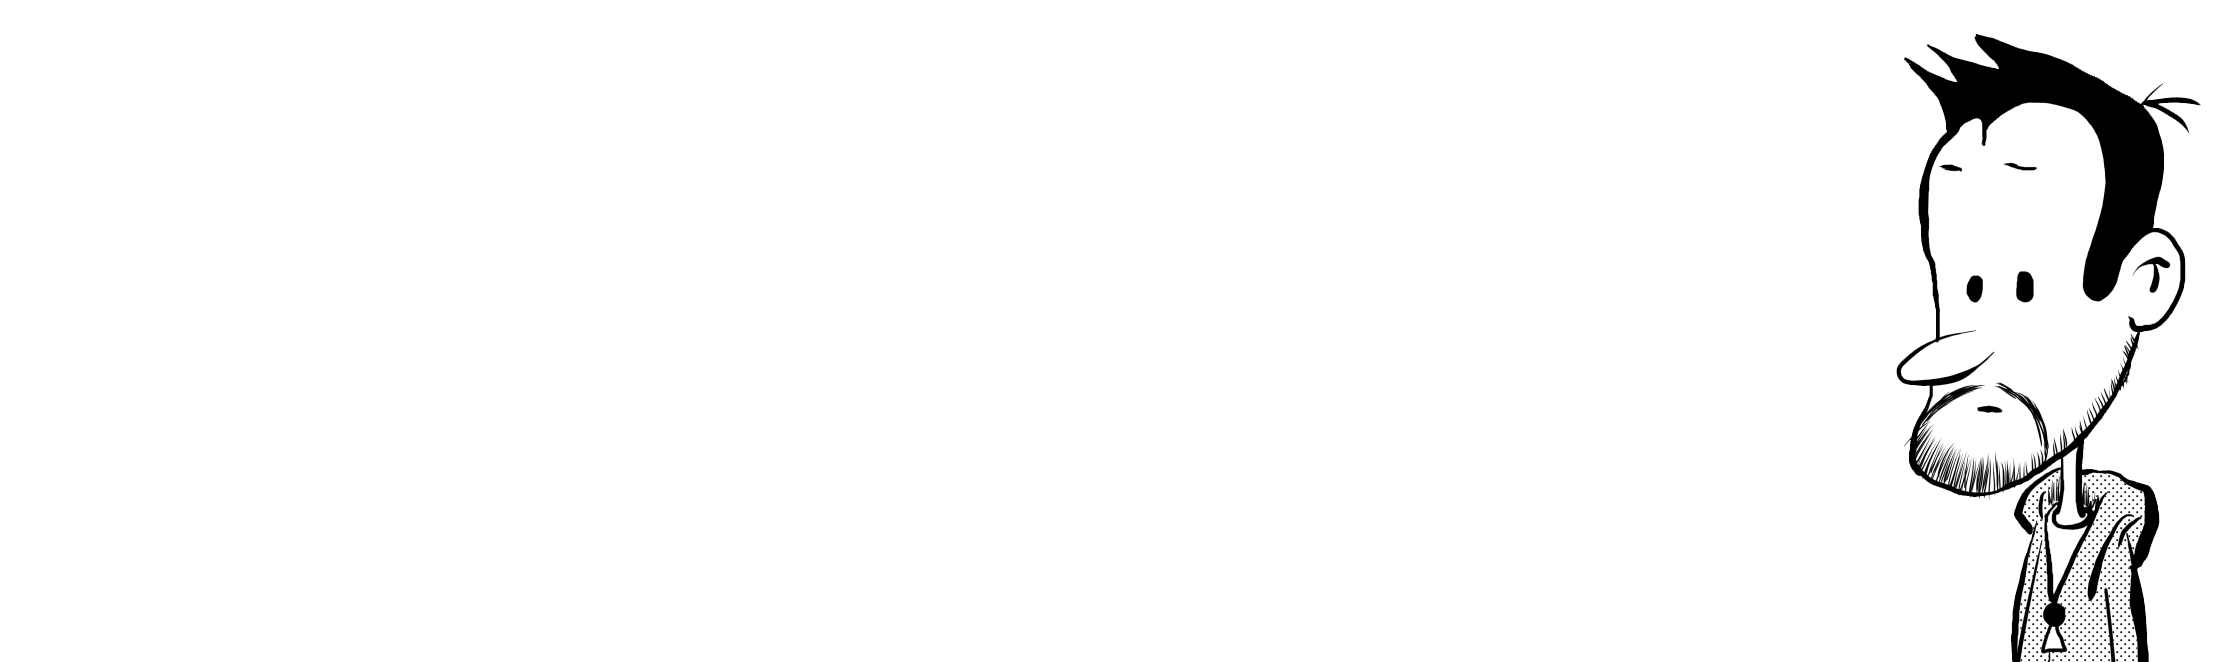 Kurt Zahn - Cartoonist and Illustrator aus Berlin